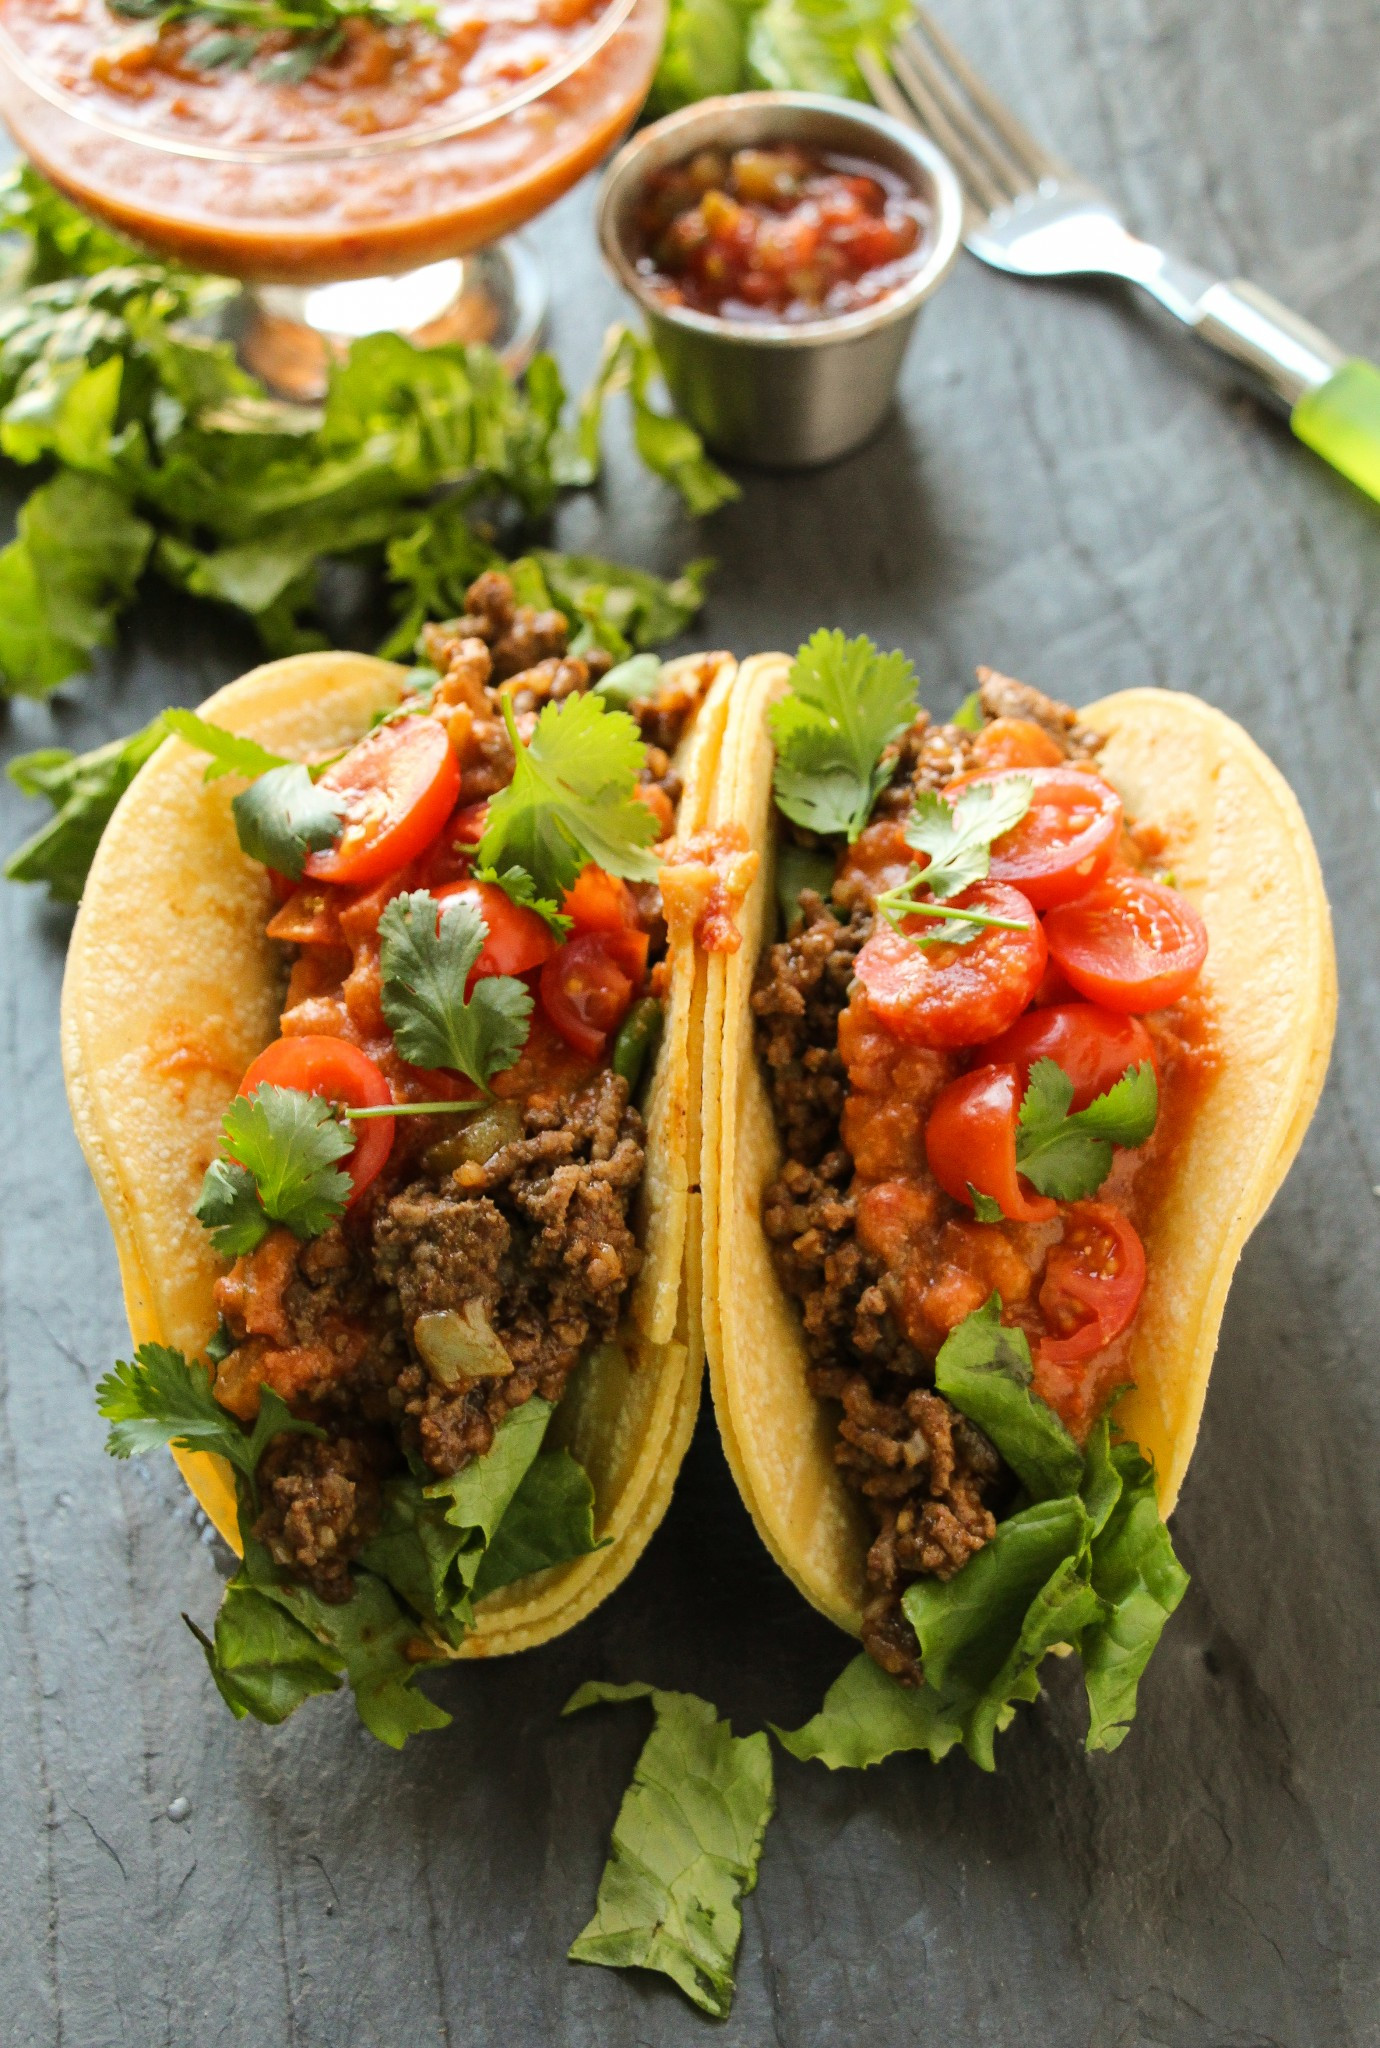 How To Cook Ground Beef For Tacos  Ground Beef Tacos with Loaded Refried Bean Sauce Layers